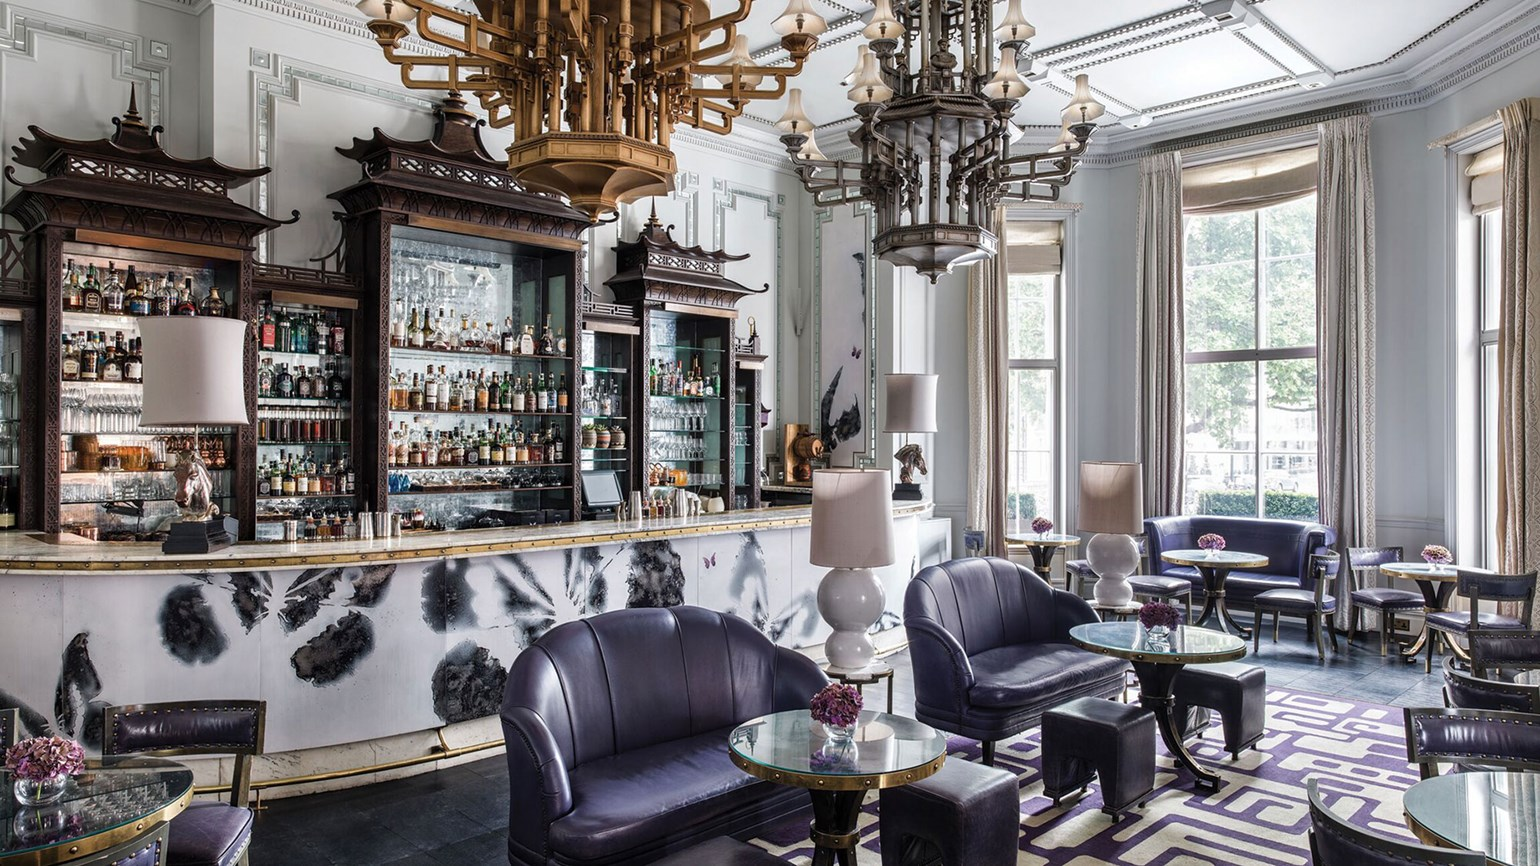 Forbes inspectors list world's best hotel bars